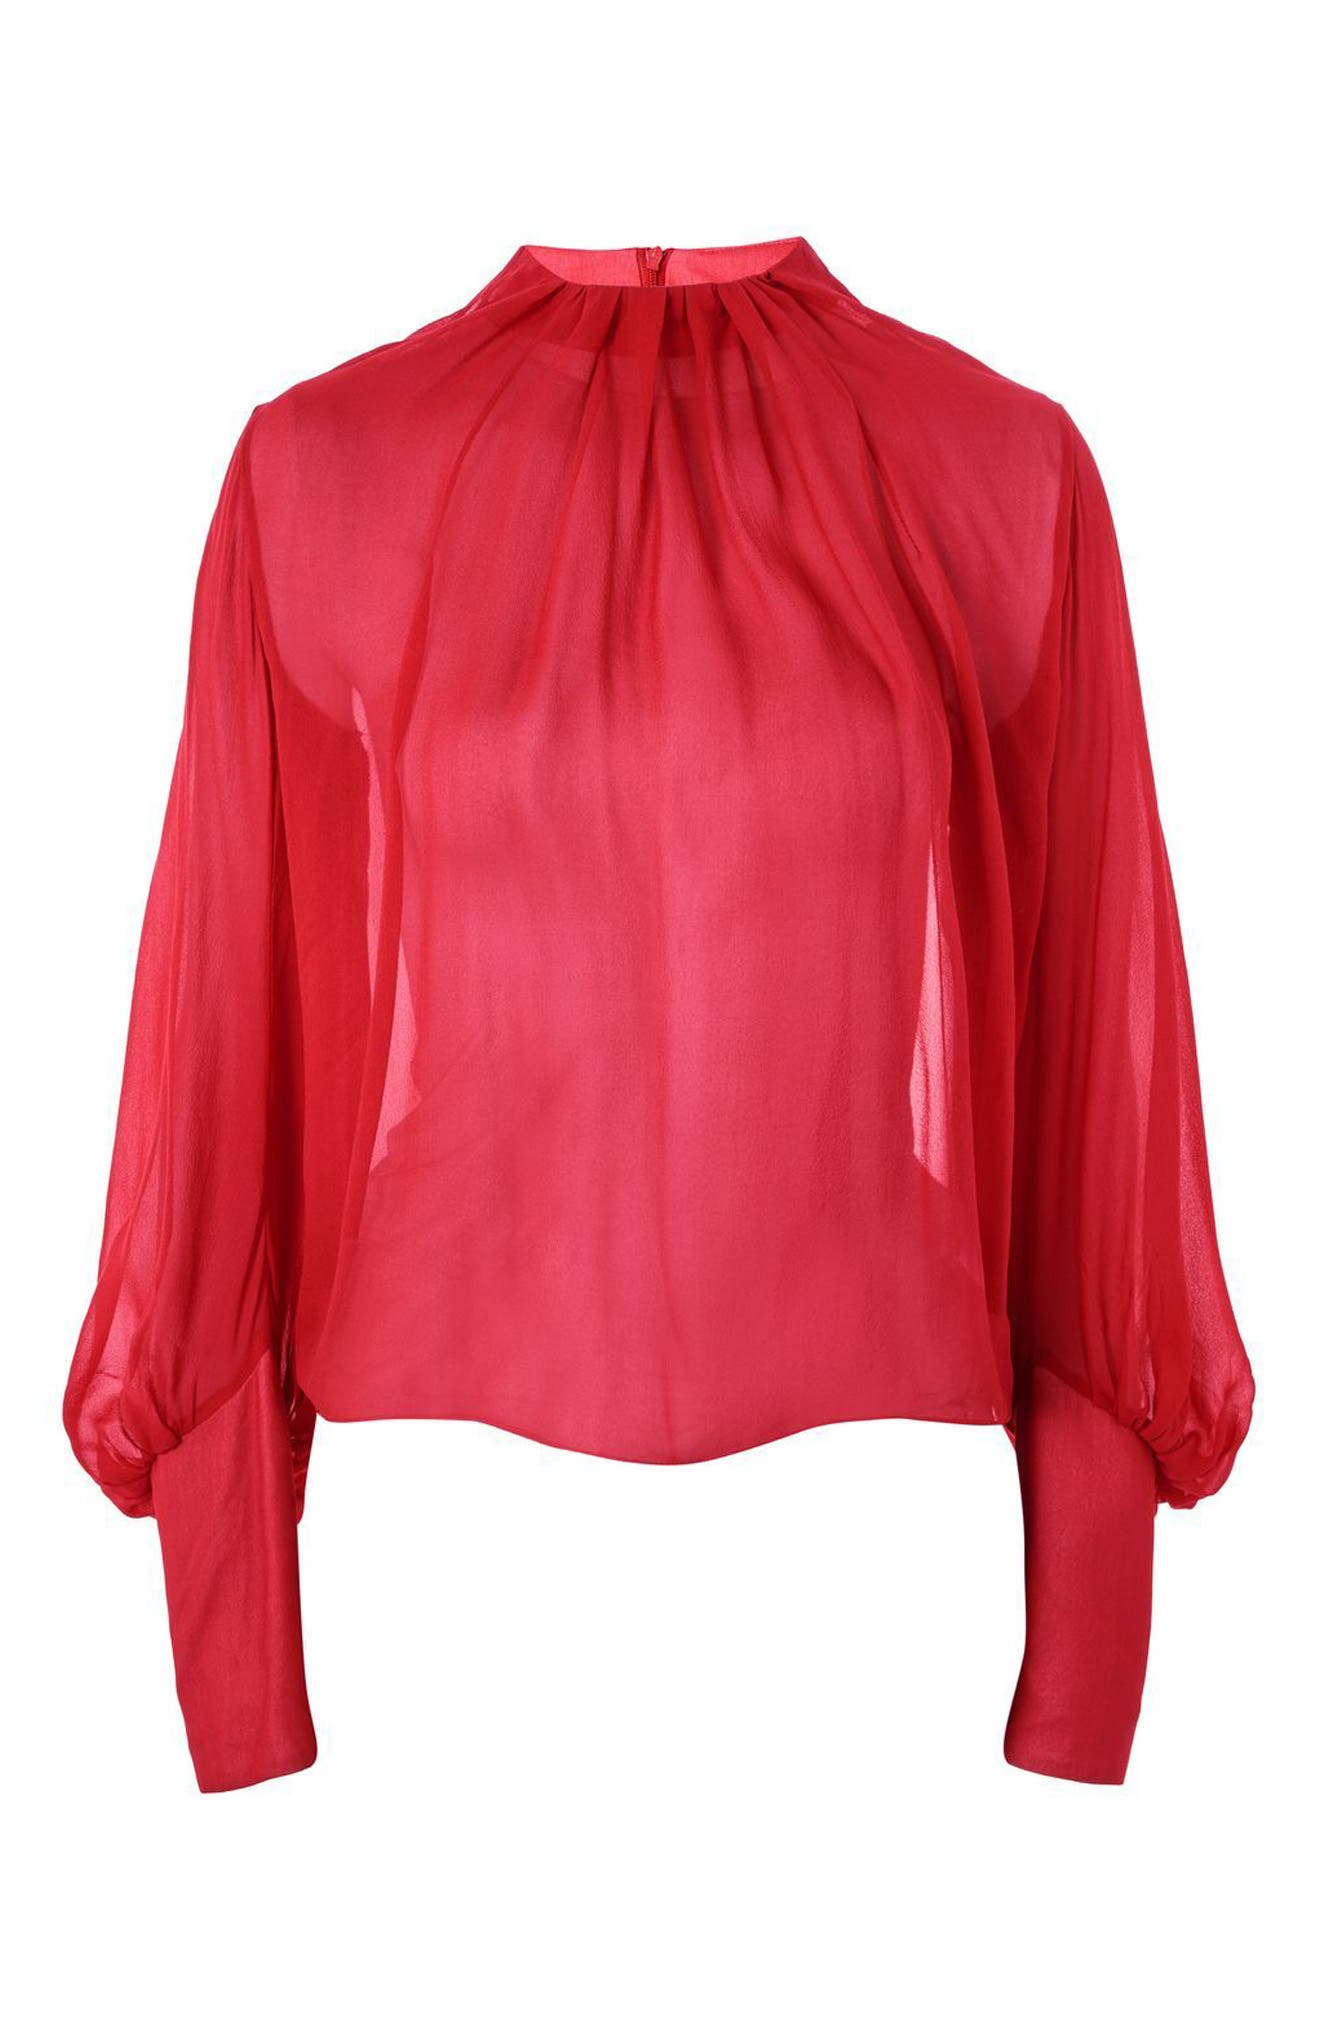 Pleat Neck Blouse,                         Main,                         color, Red